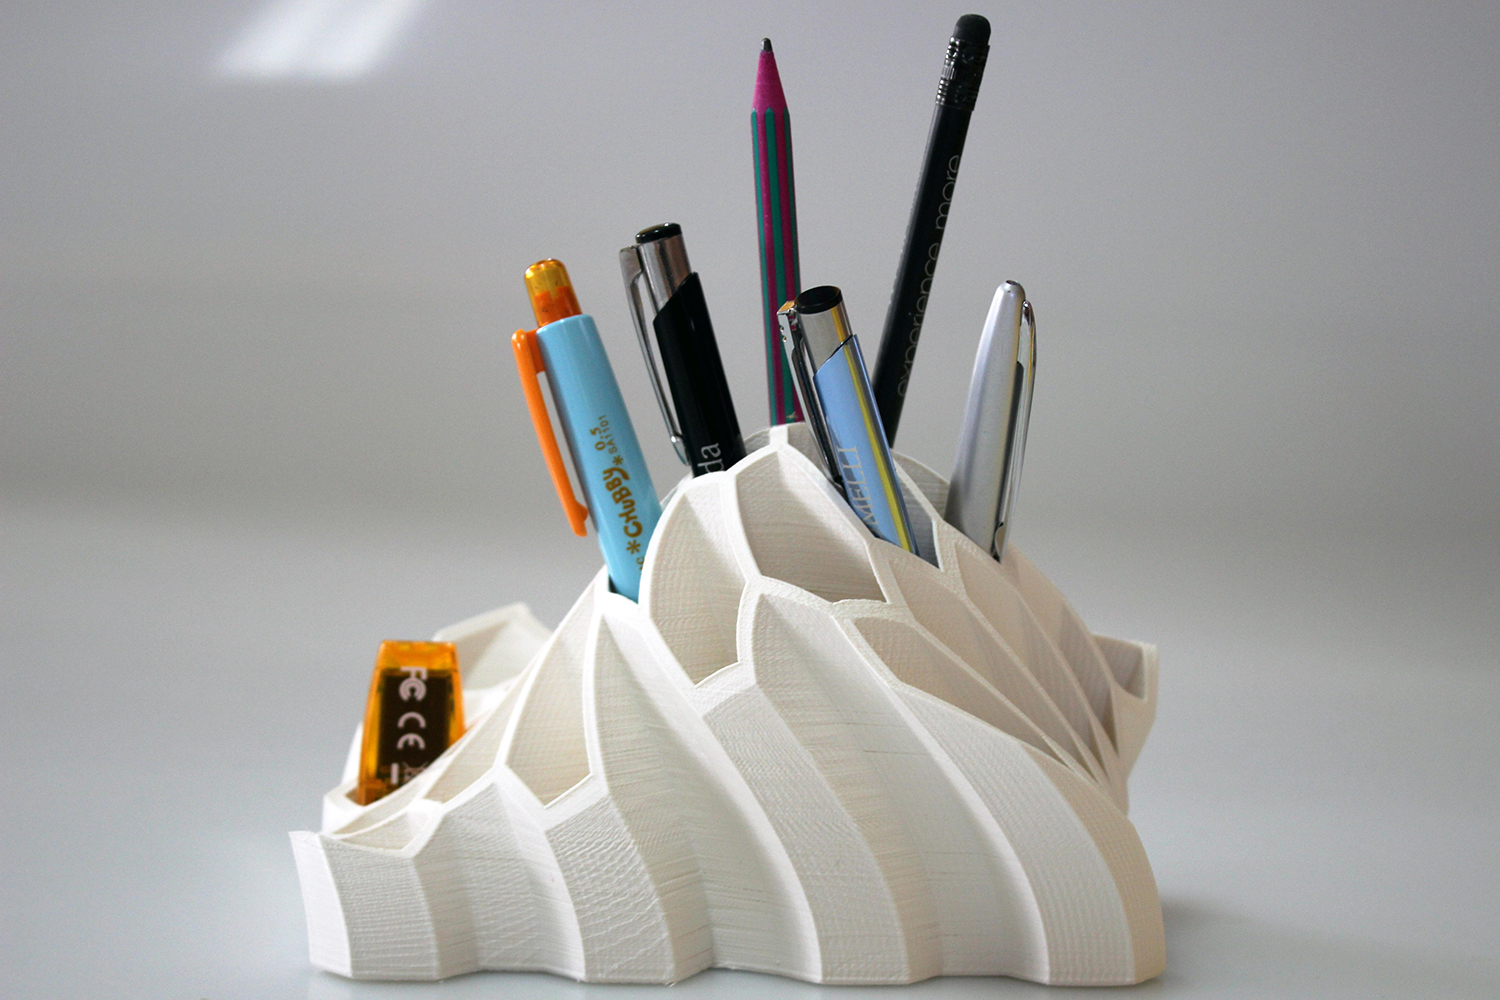 20 Useful Household Items You Can Make With A 3d Printer